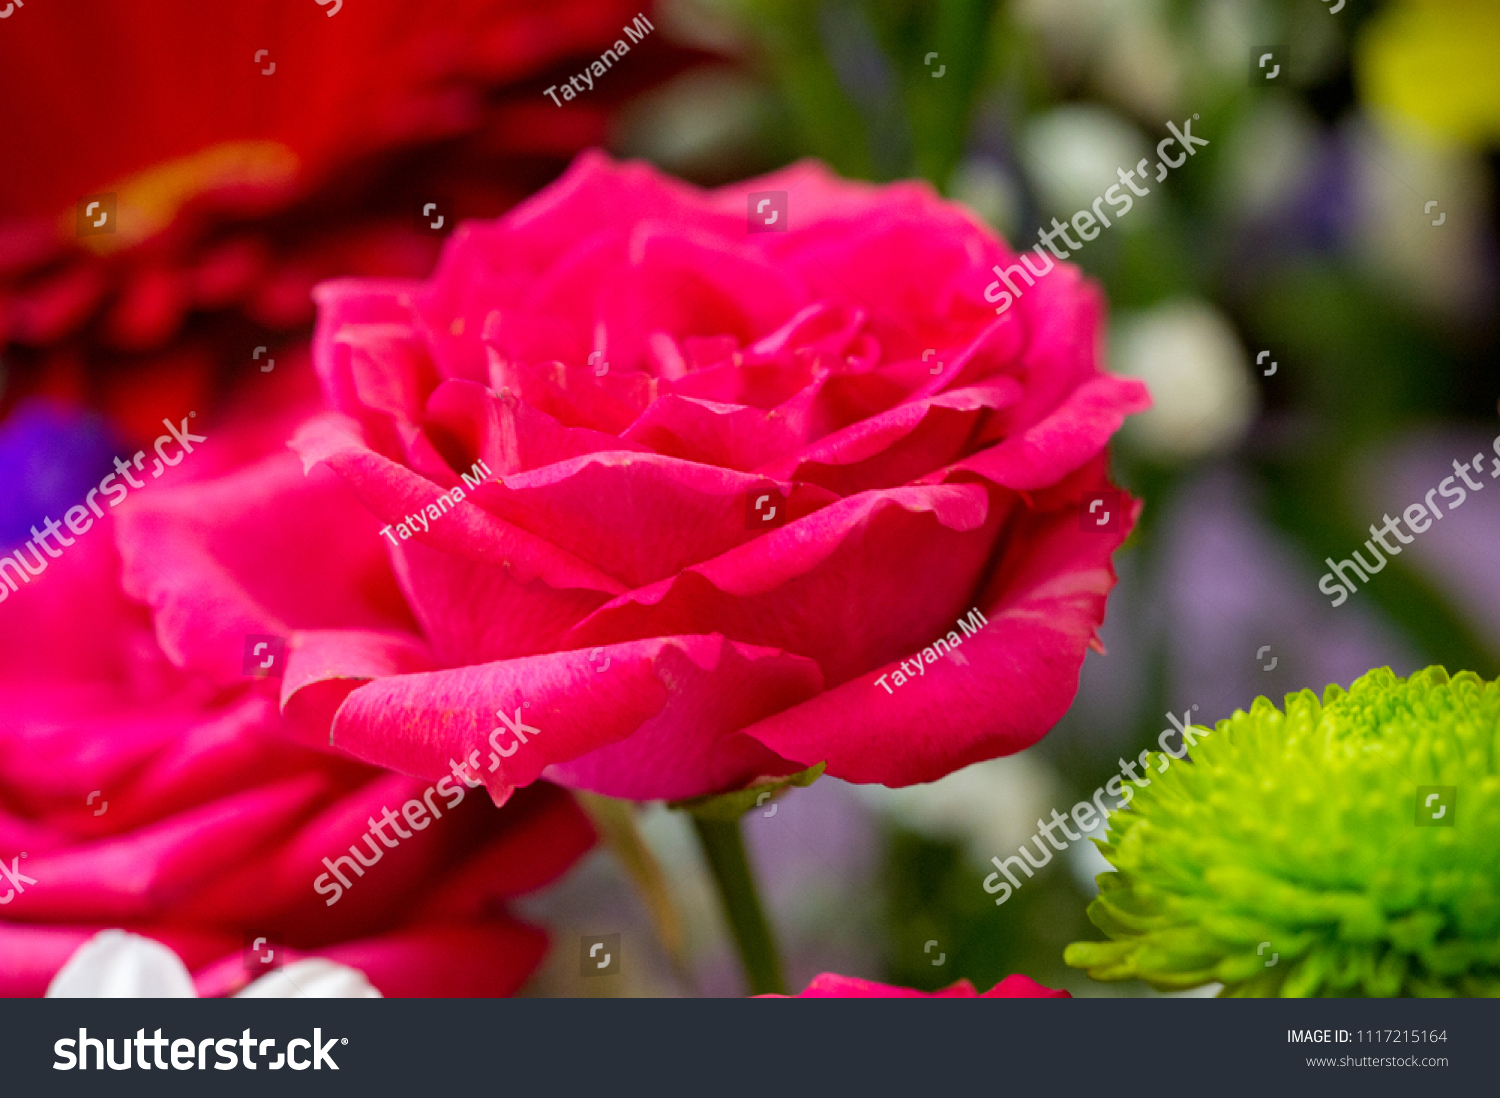 Roses plant beautiful large fragrant flowers stock photo edit now a plant with beautiful large fragrant flowers and a stalk usually covered with izmirmasajfo